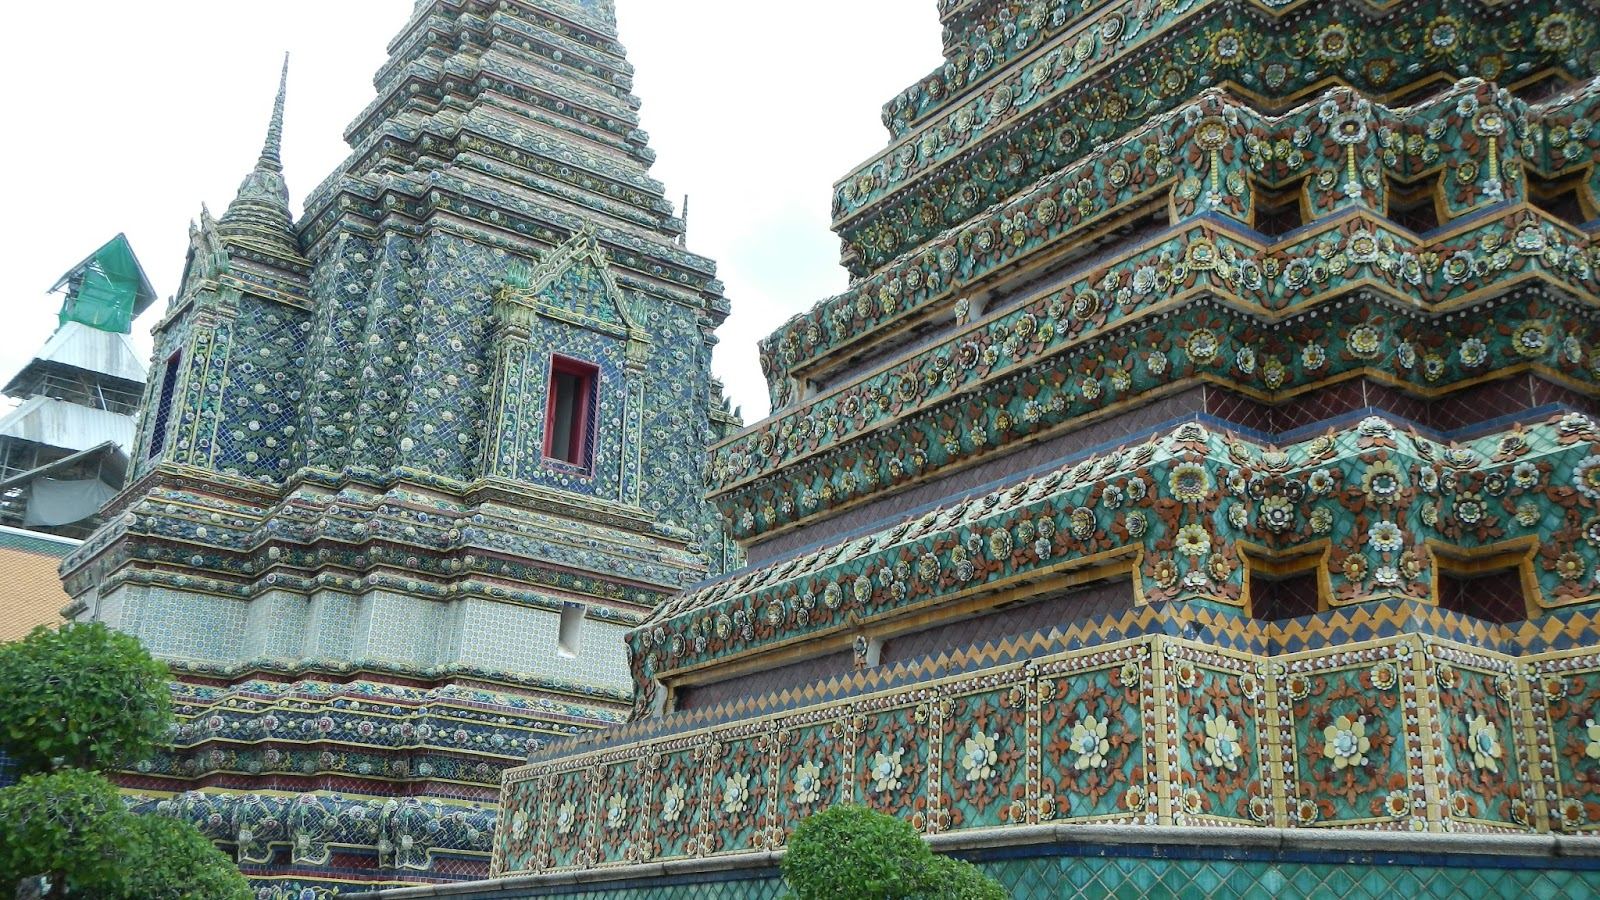 ...Tile Art and Wat Pho